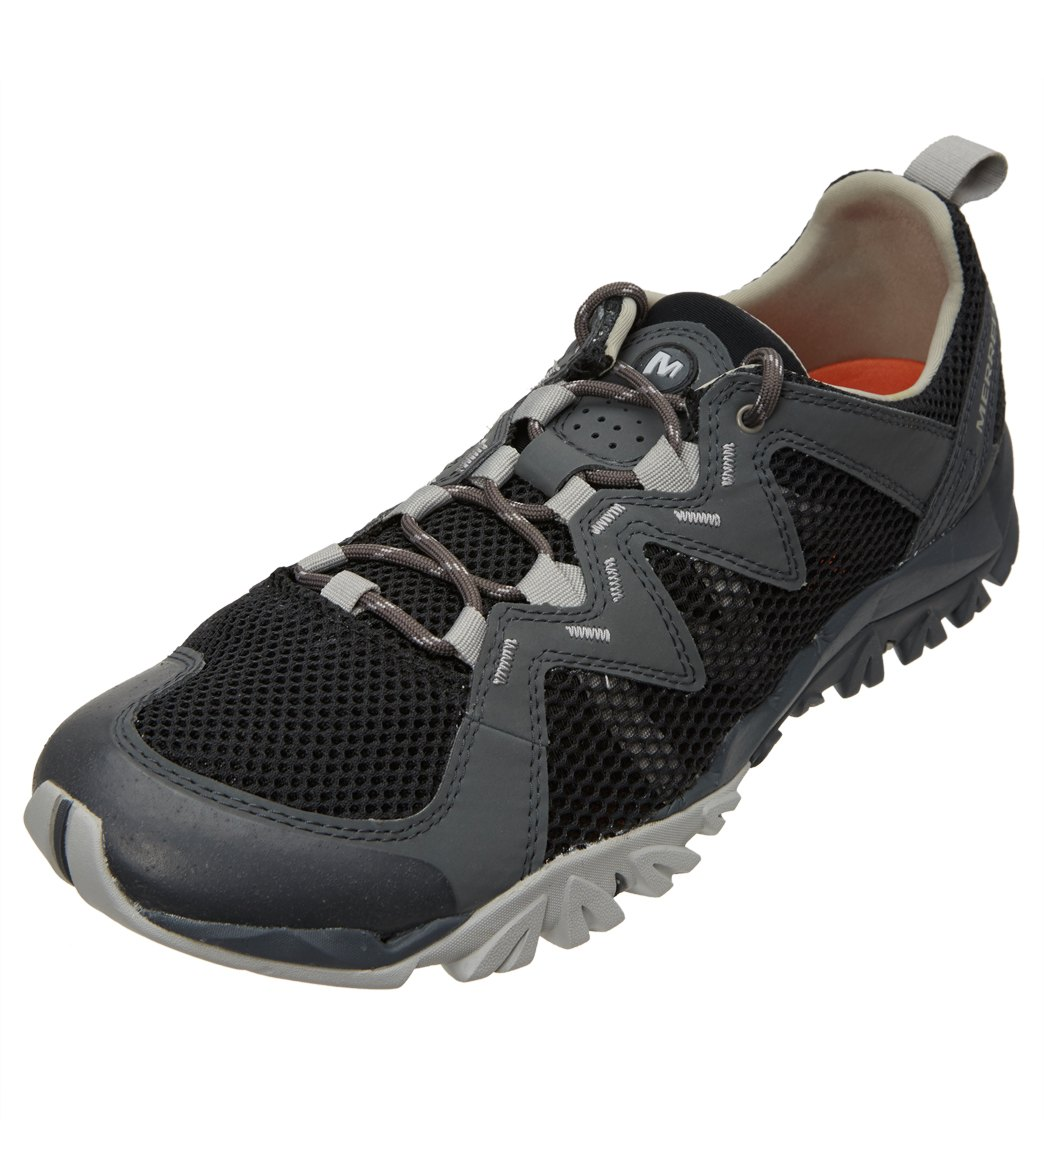 53d52e7b6643 Merrell Men s Tetrex Rapid Crest Water Shoe at SwimOutlet.com - Free  Shipping